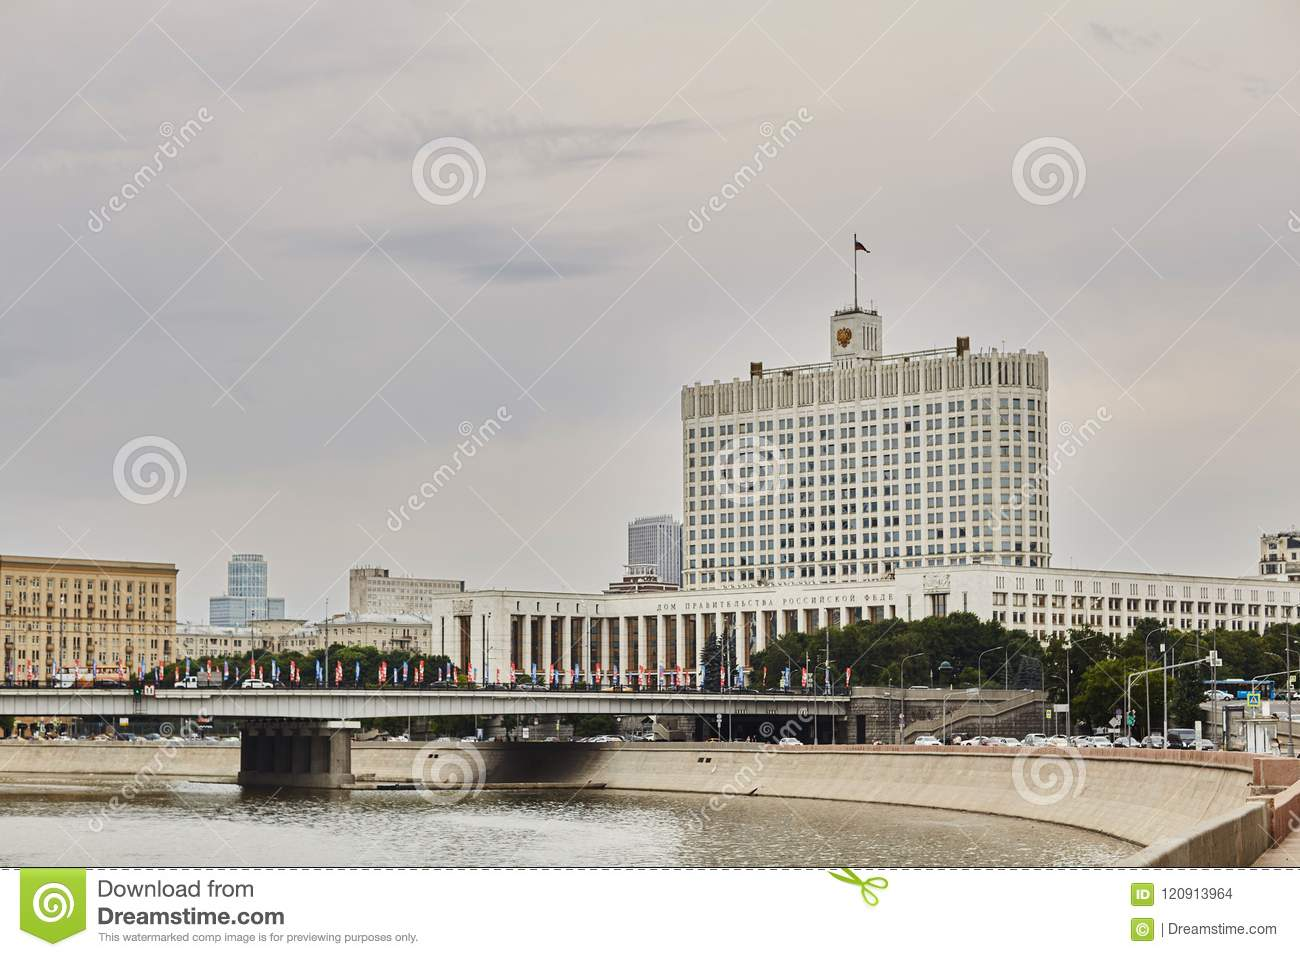 Government house in Moscow. Russian Federation.